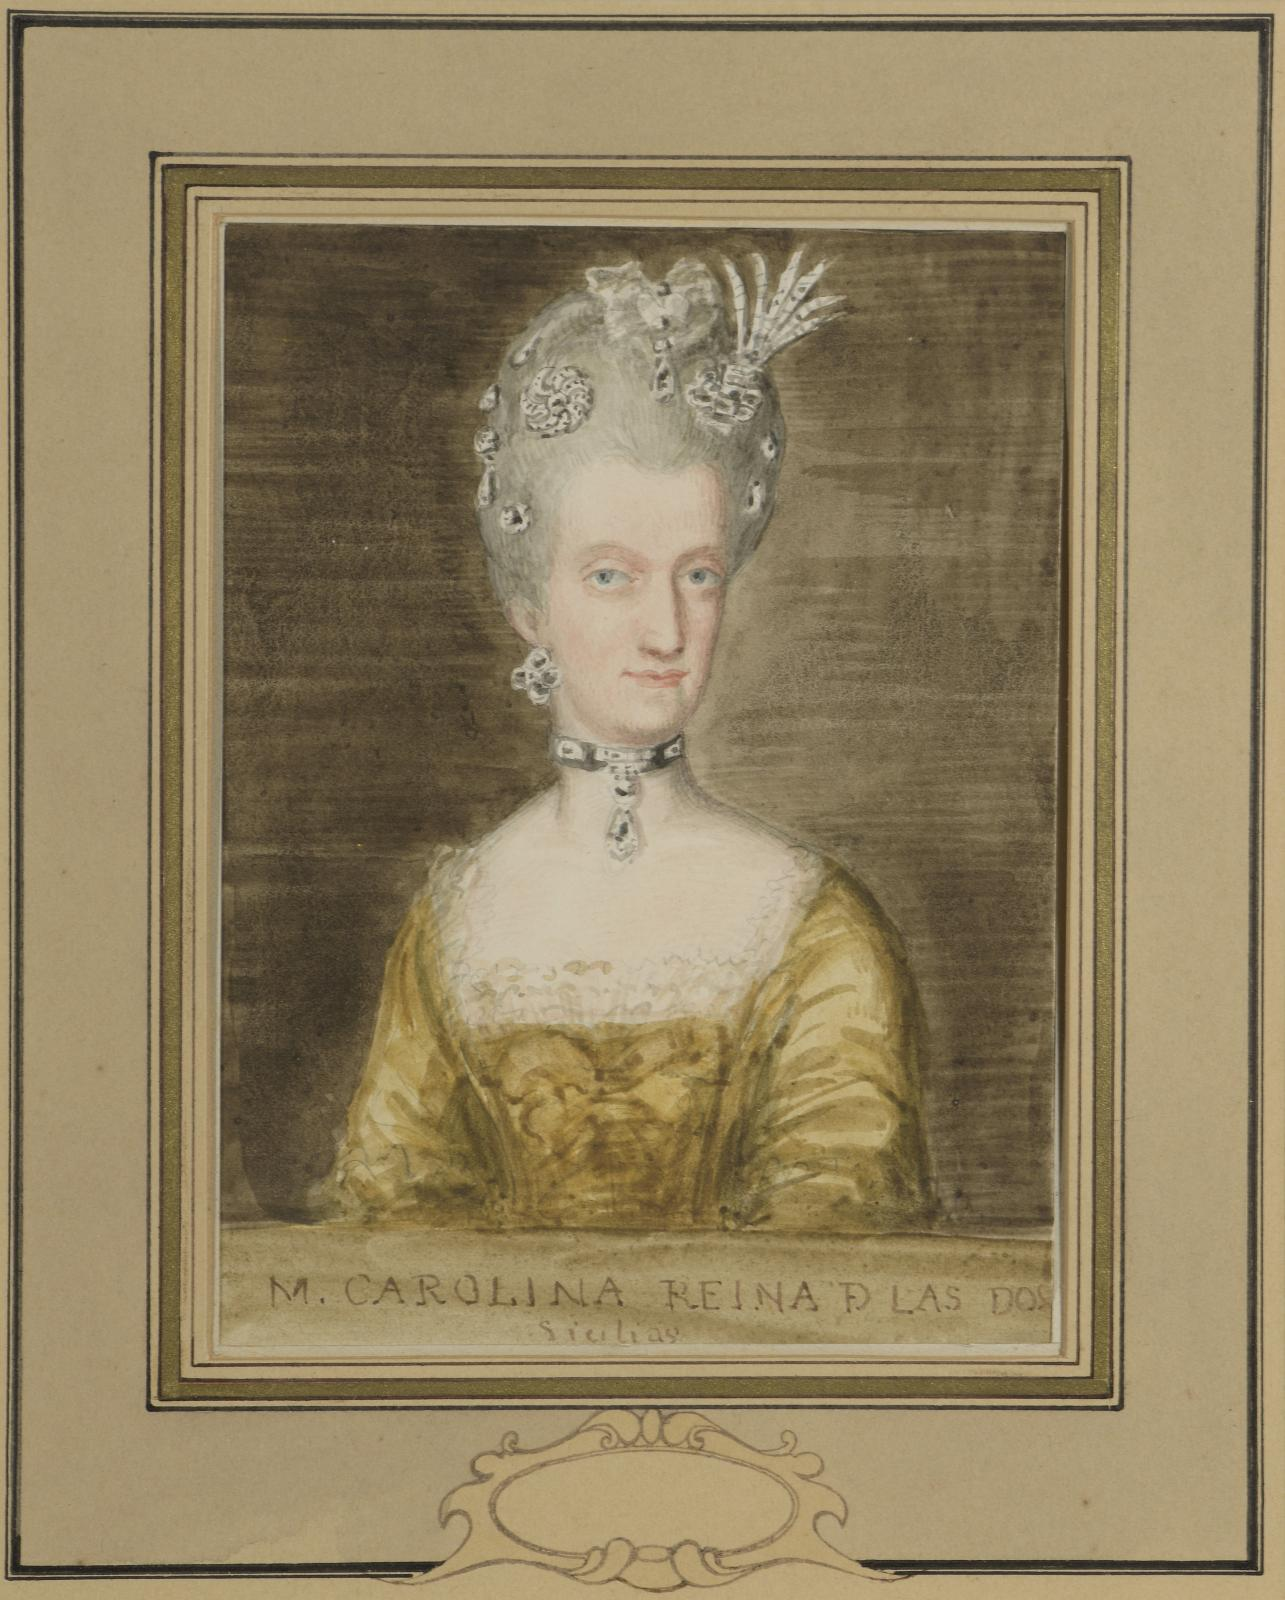 €780Valentín Carderera y Solano (1796–1880), Portrait of Queen Marie-Caroline of Bourbon of the Two Sicilies wearing a choker, watercolor,